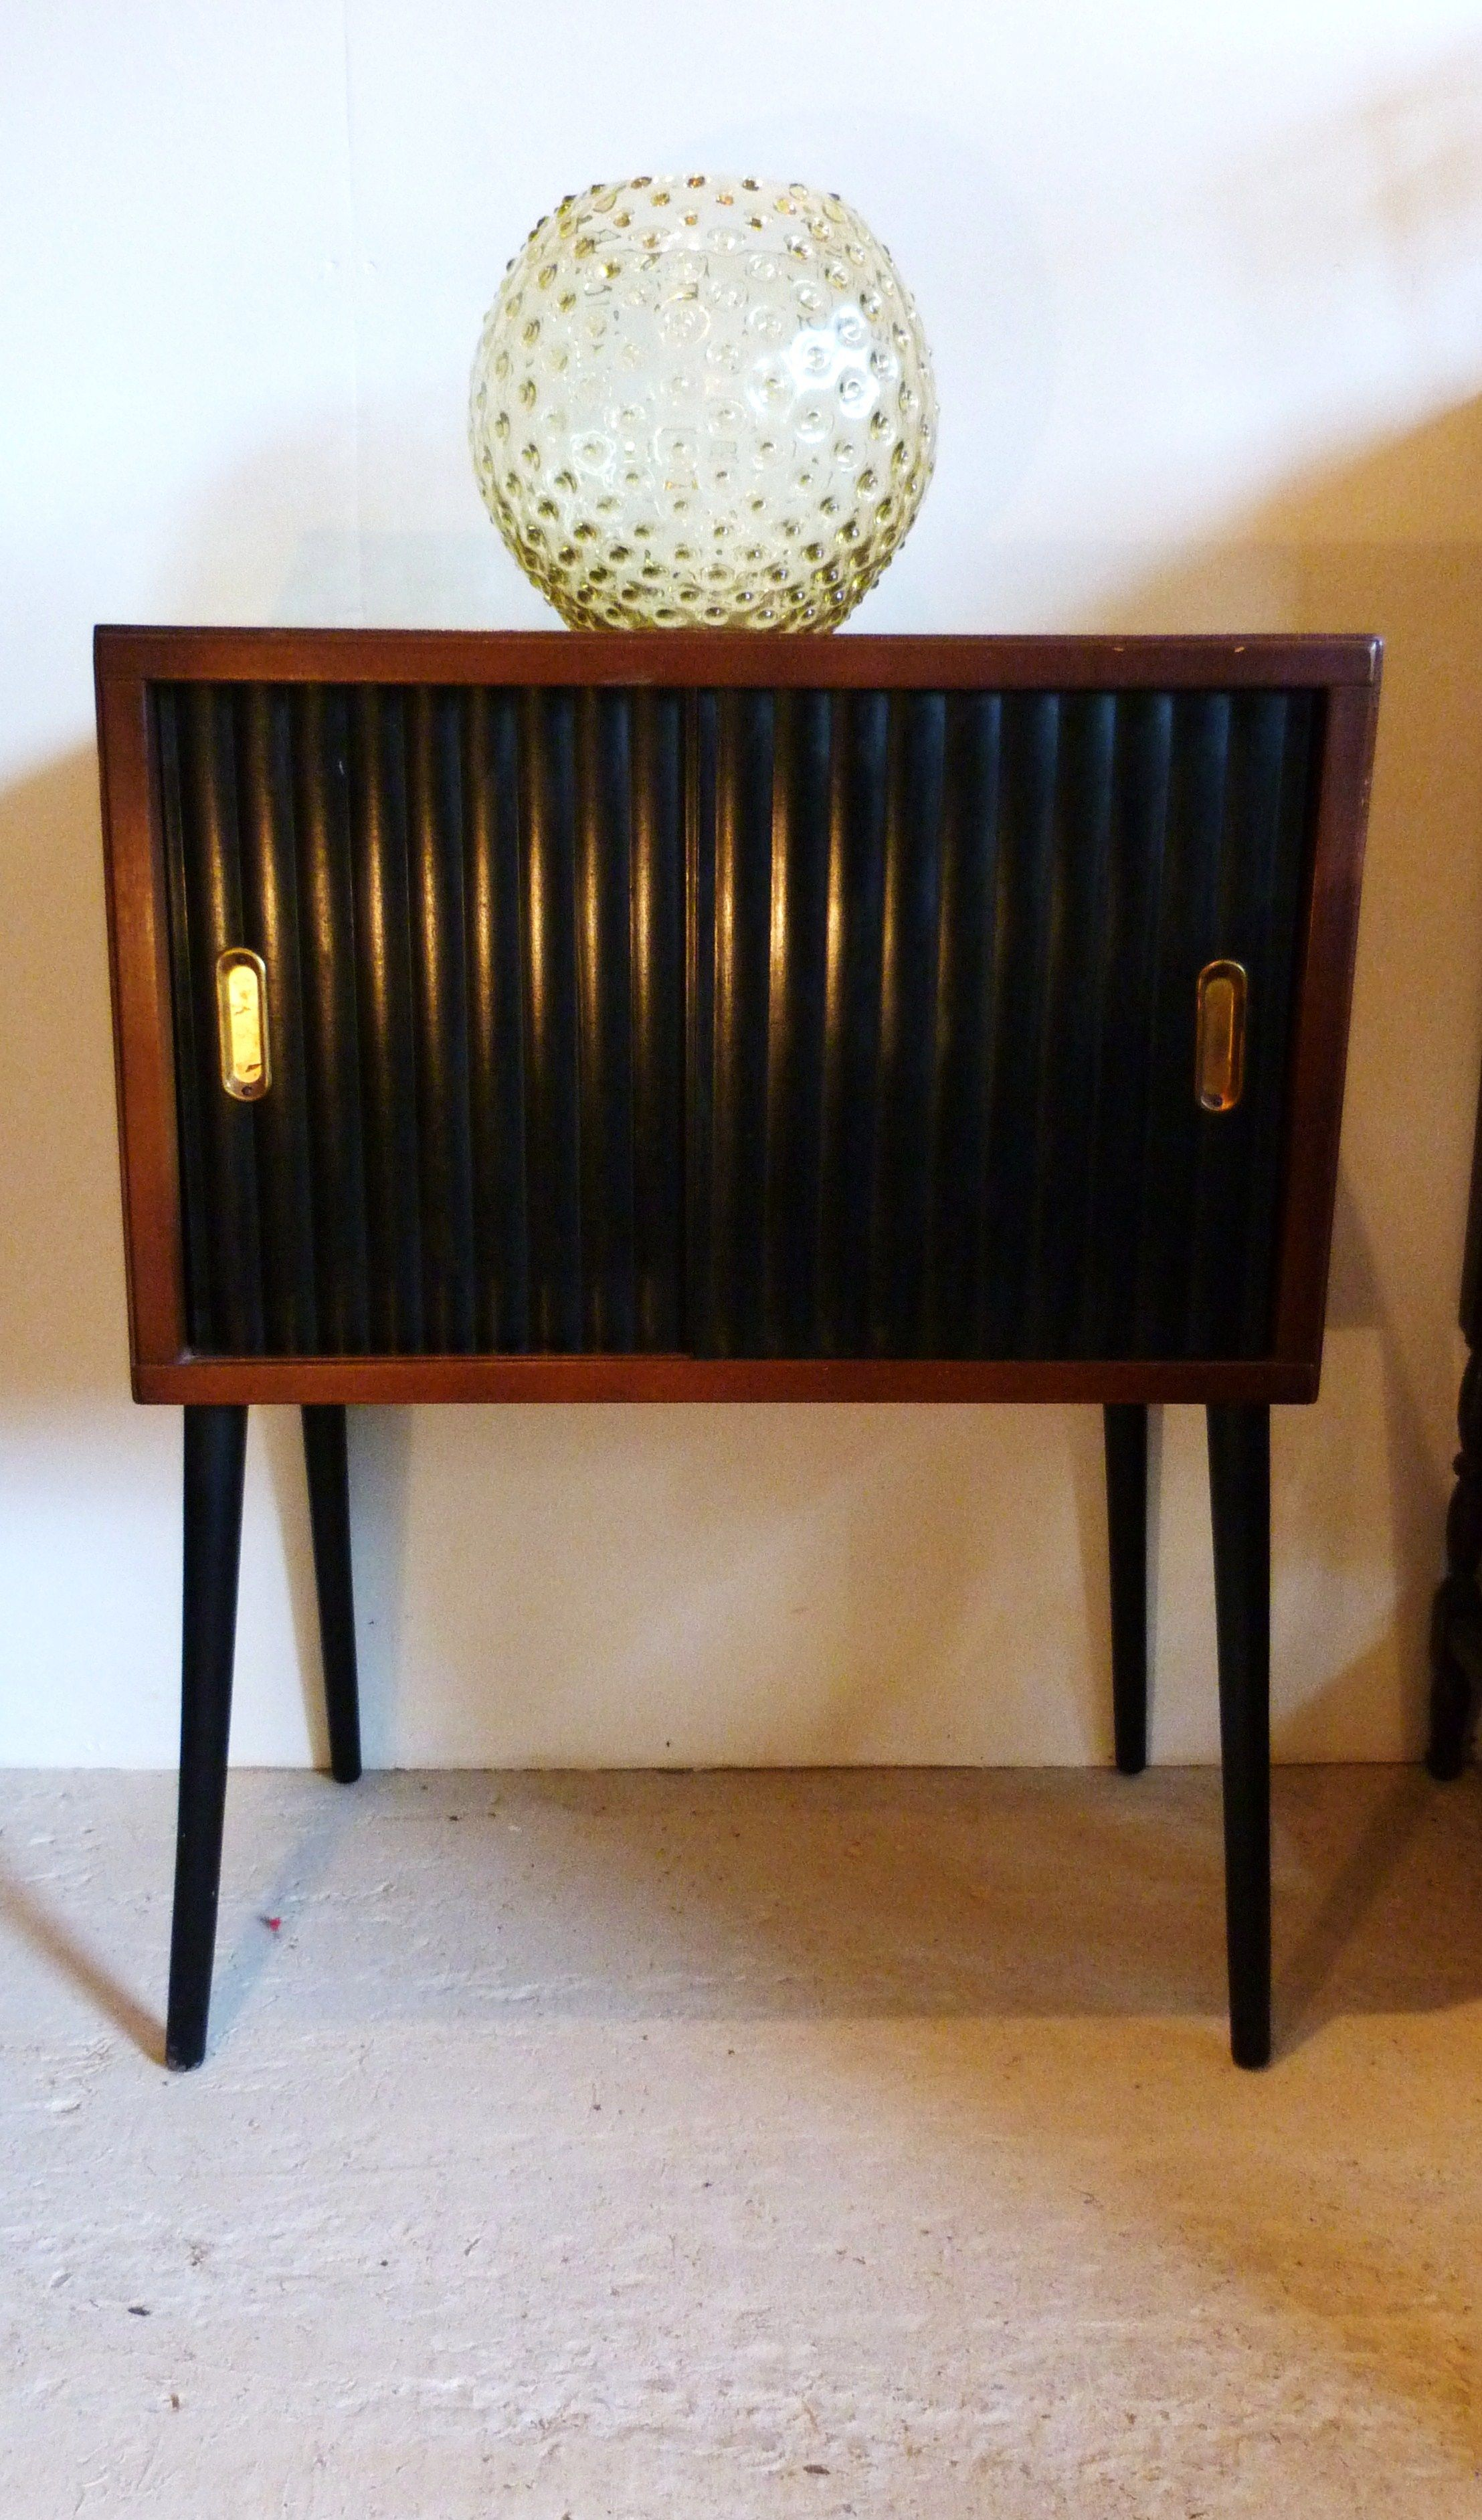 1960s Record Cabinet Funky 1960s Record Cabinet And Bobble Vase By Borske Sklo